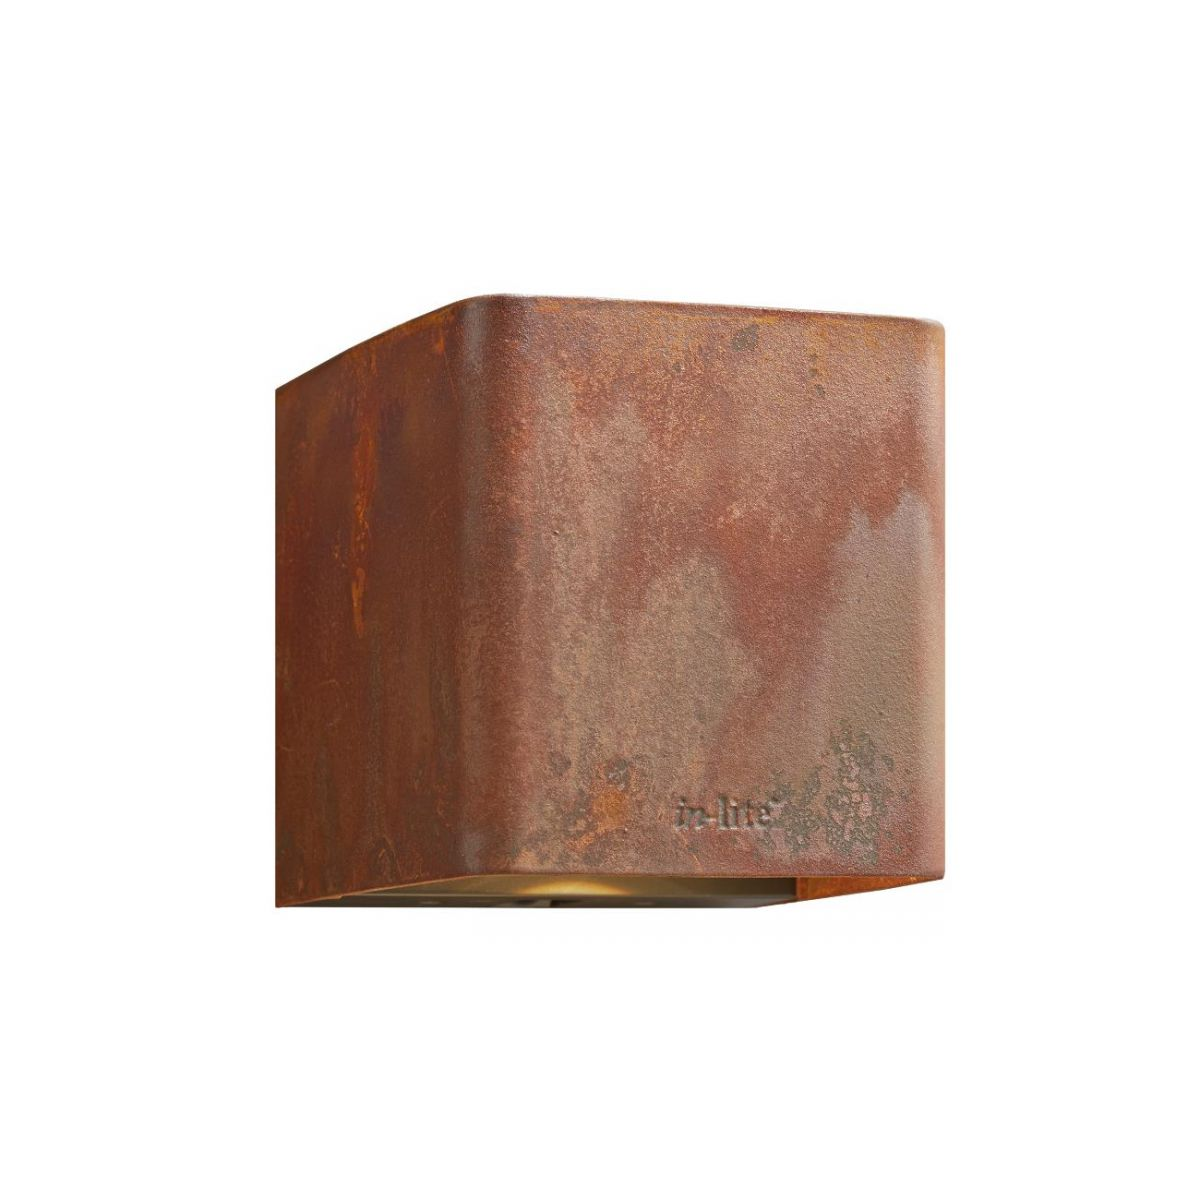 in-lite Ace Corten Wall Down Light 230v.1